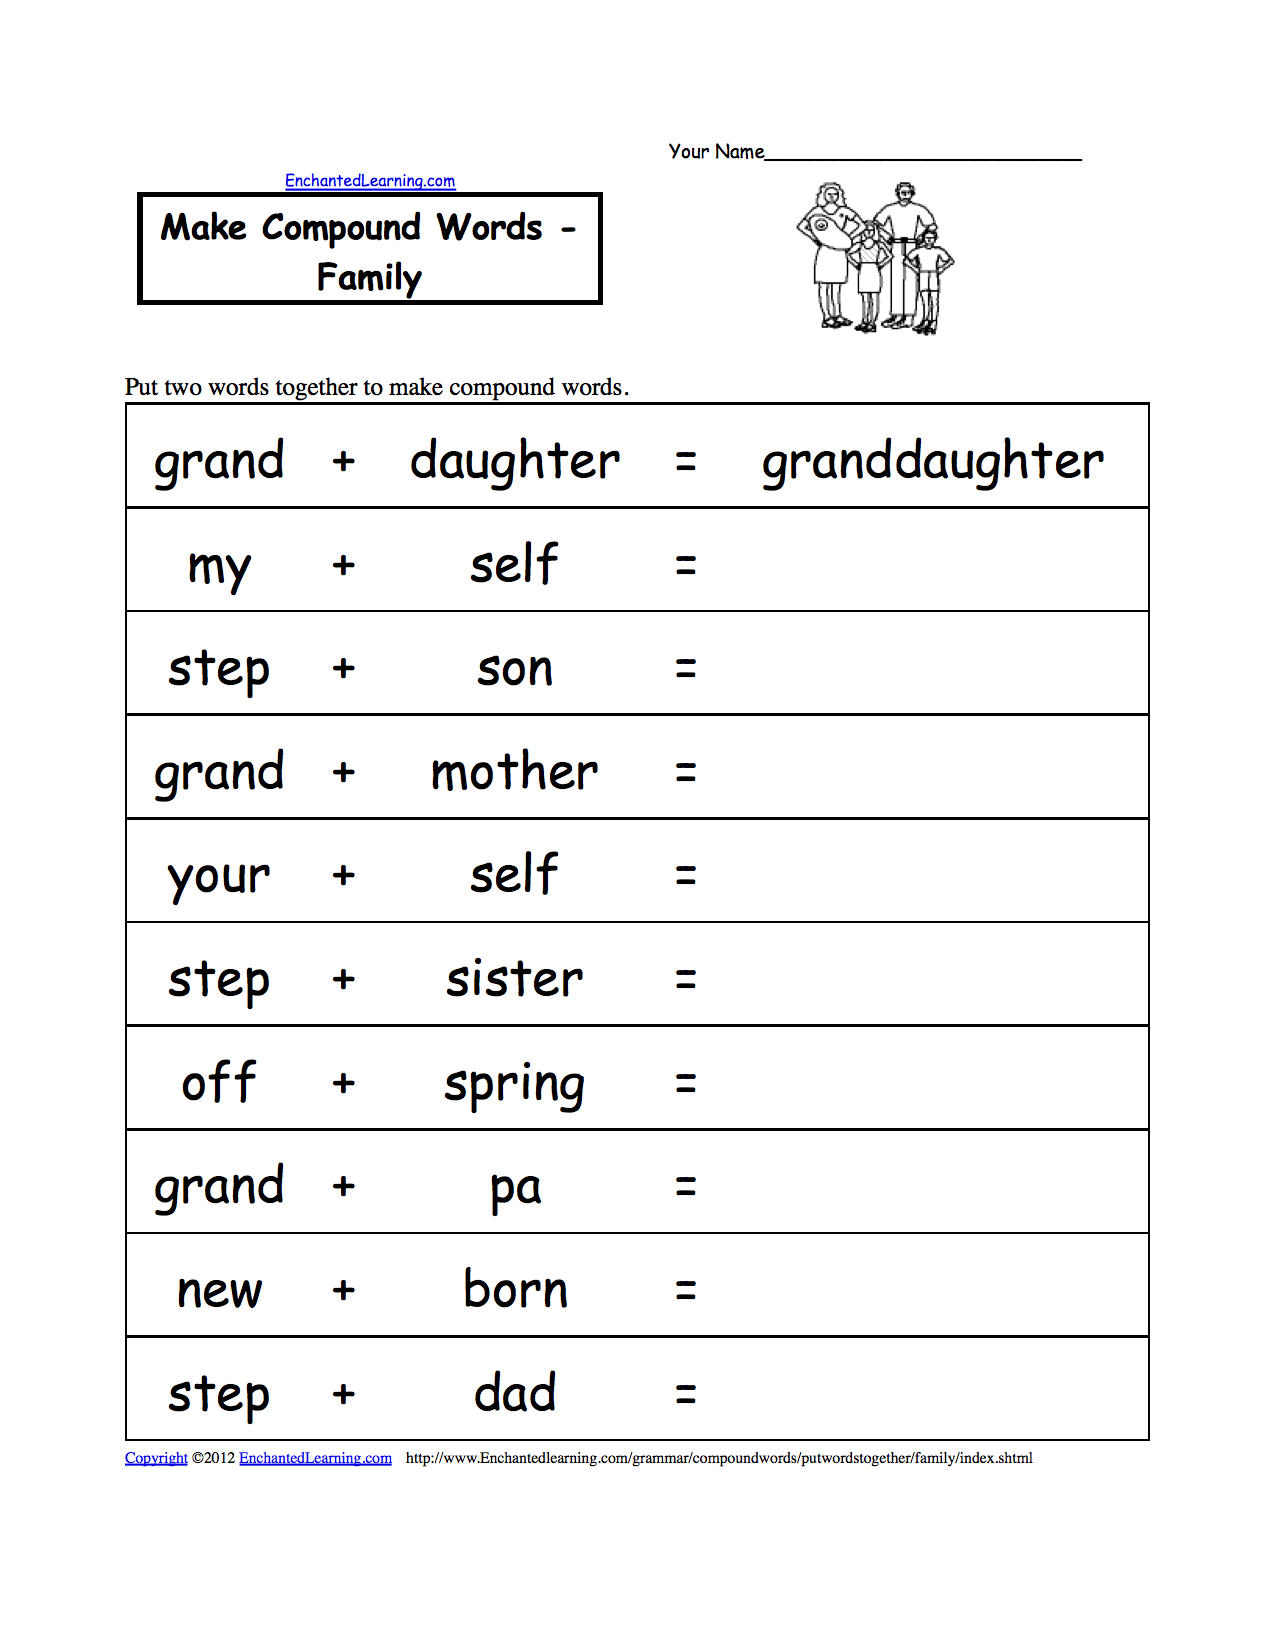 Weirdmailus  Splendid Make Compound Words Printable Worksheets Enchantedlearningcom With Marvelous Make Compound Words With Charming Elements Of Culture Worksheet Also Genetic Practice Problems Worksheet In Addition Logs Worksheet And Identify Coins Worksheets As Well As Math Worksheet Go Additionally Worksheets For Fifth Grade From Enchantedlearningcom With Weirdmailus  Marvelous Make Compound Words Printable Worksheets Enchantedlearningcom With Charming Make Compound Words And Splendid Elements Of Culture Worksheet Also Genetic Practice Problems Worksheet In Addition Logs Worksheet From Enchantedlearningcom